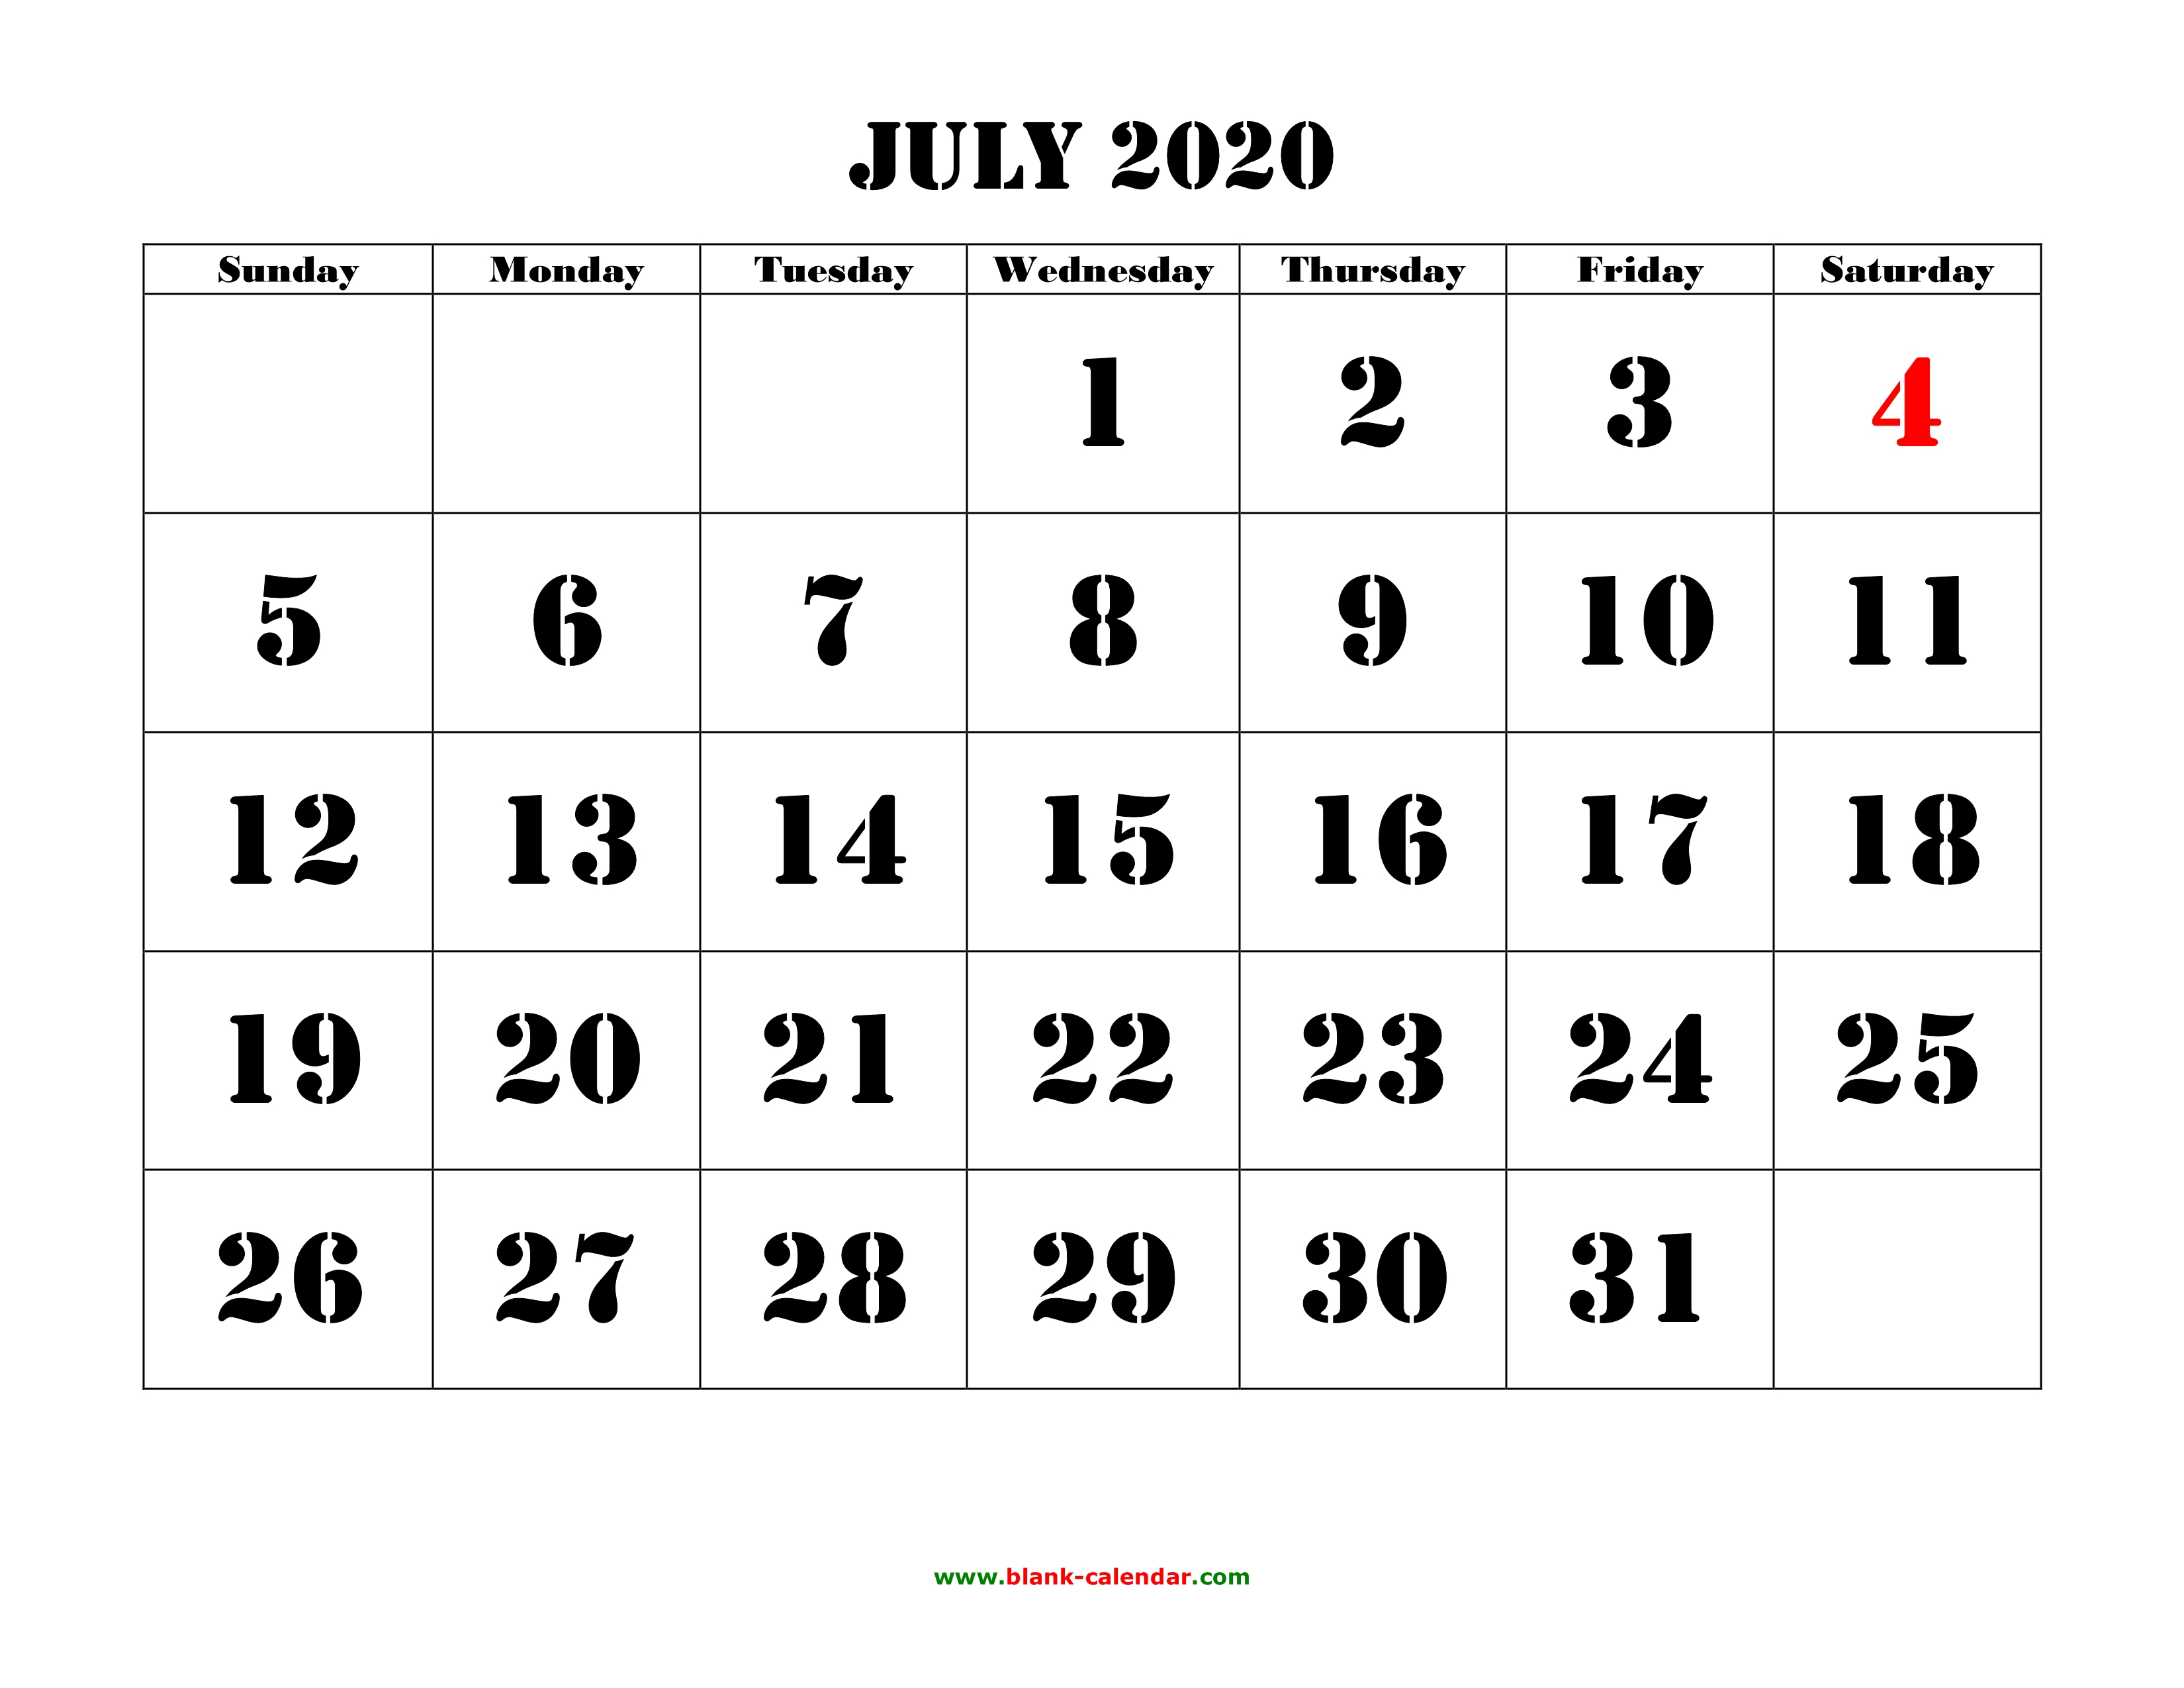 Free Download Printable July 2020 Calendar, Large Font